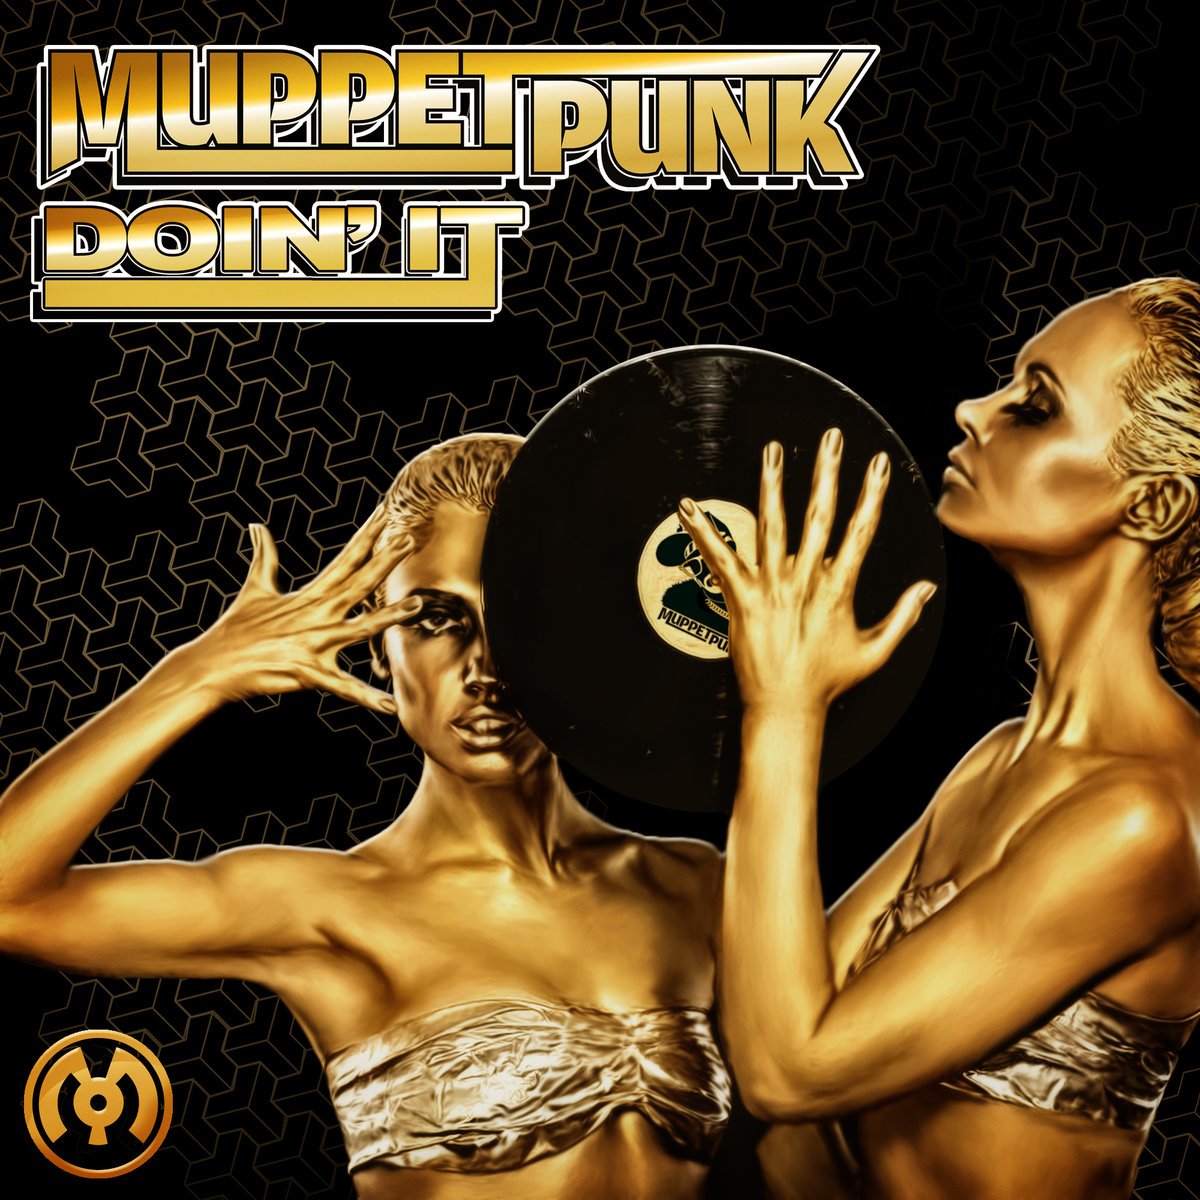 Muppet Punk - Hyphe @ 'Doin' It' album (electronic, dubstep)